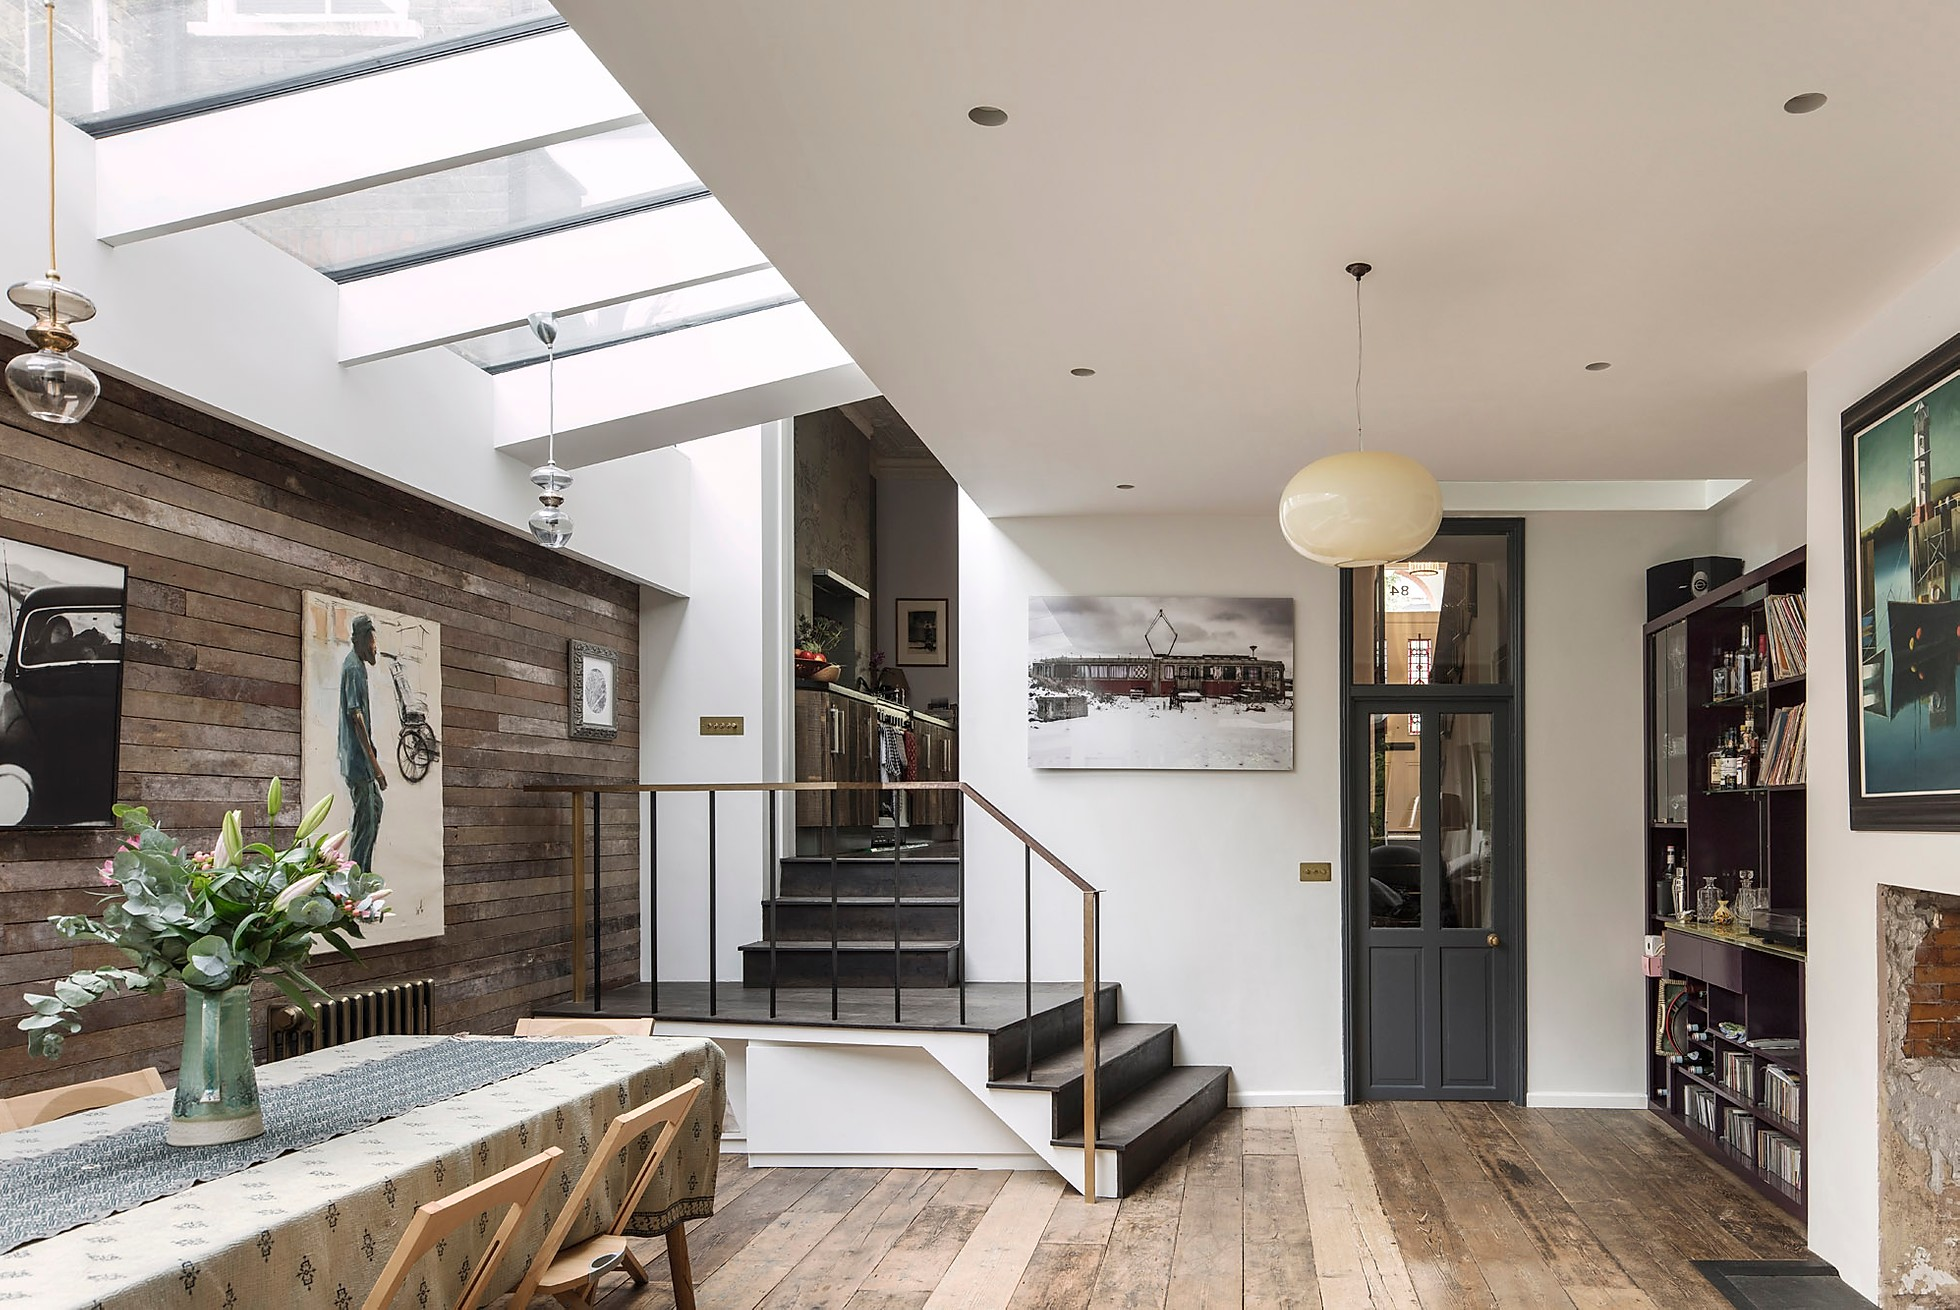 the skylight in the roof let natural sun light enters the living room